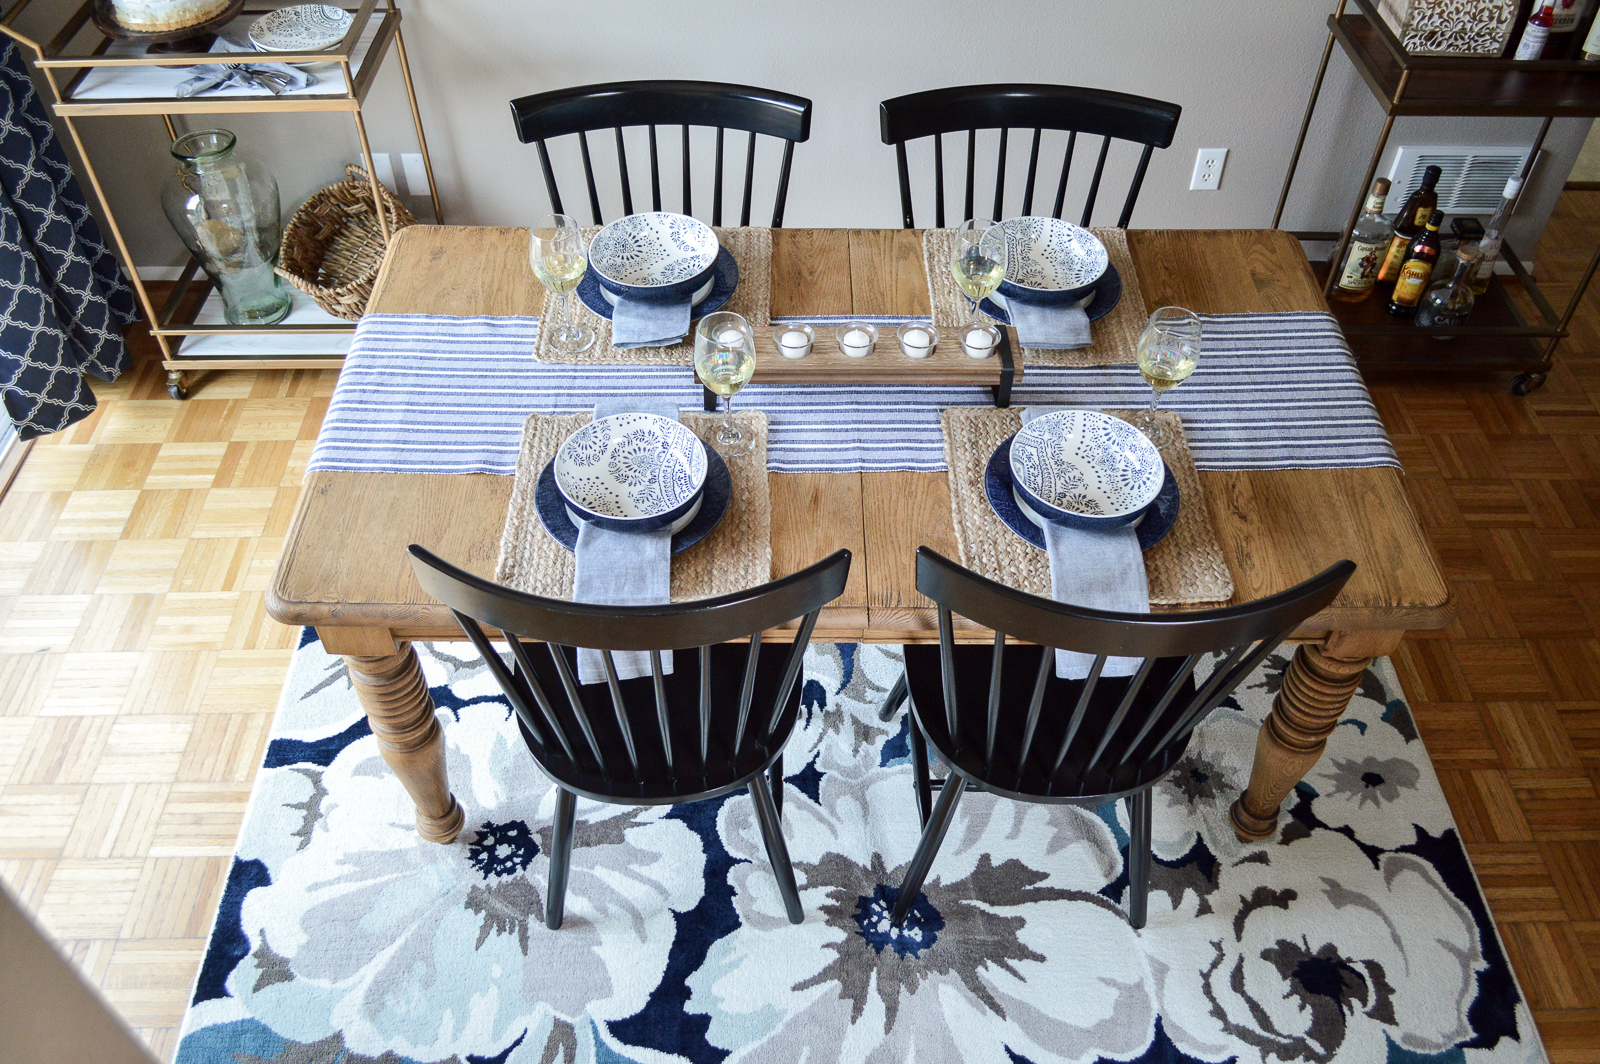 Small Space Dining Room Decorating Ideas, Before & After Makeover with Better Homes & Gardens from Walmart at foxhollowcottage.com #sponsored | blue dishes, farm table, casual dining